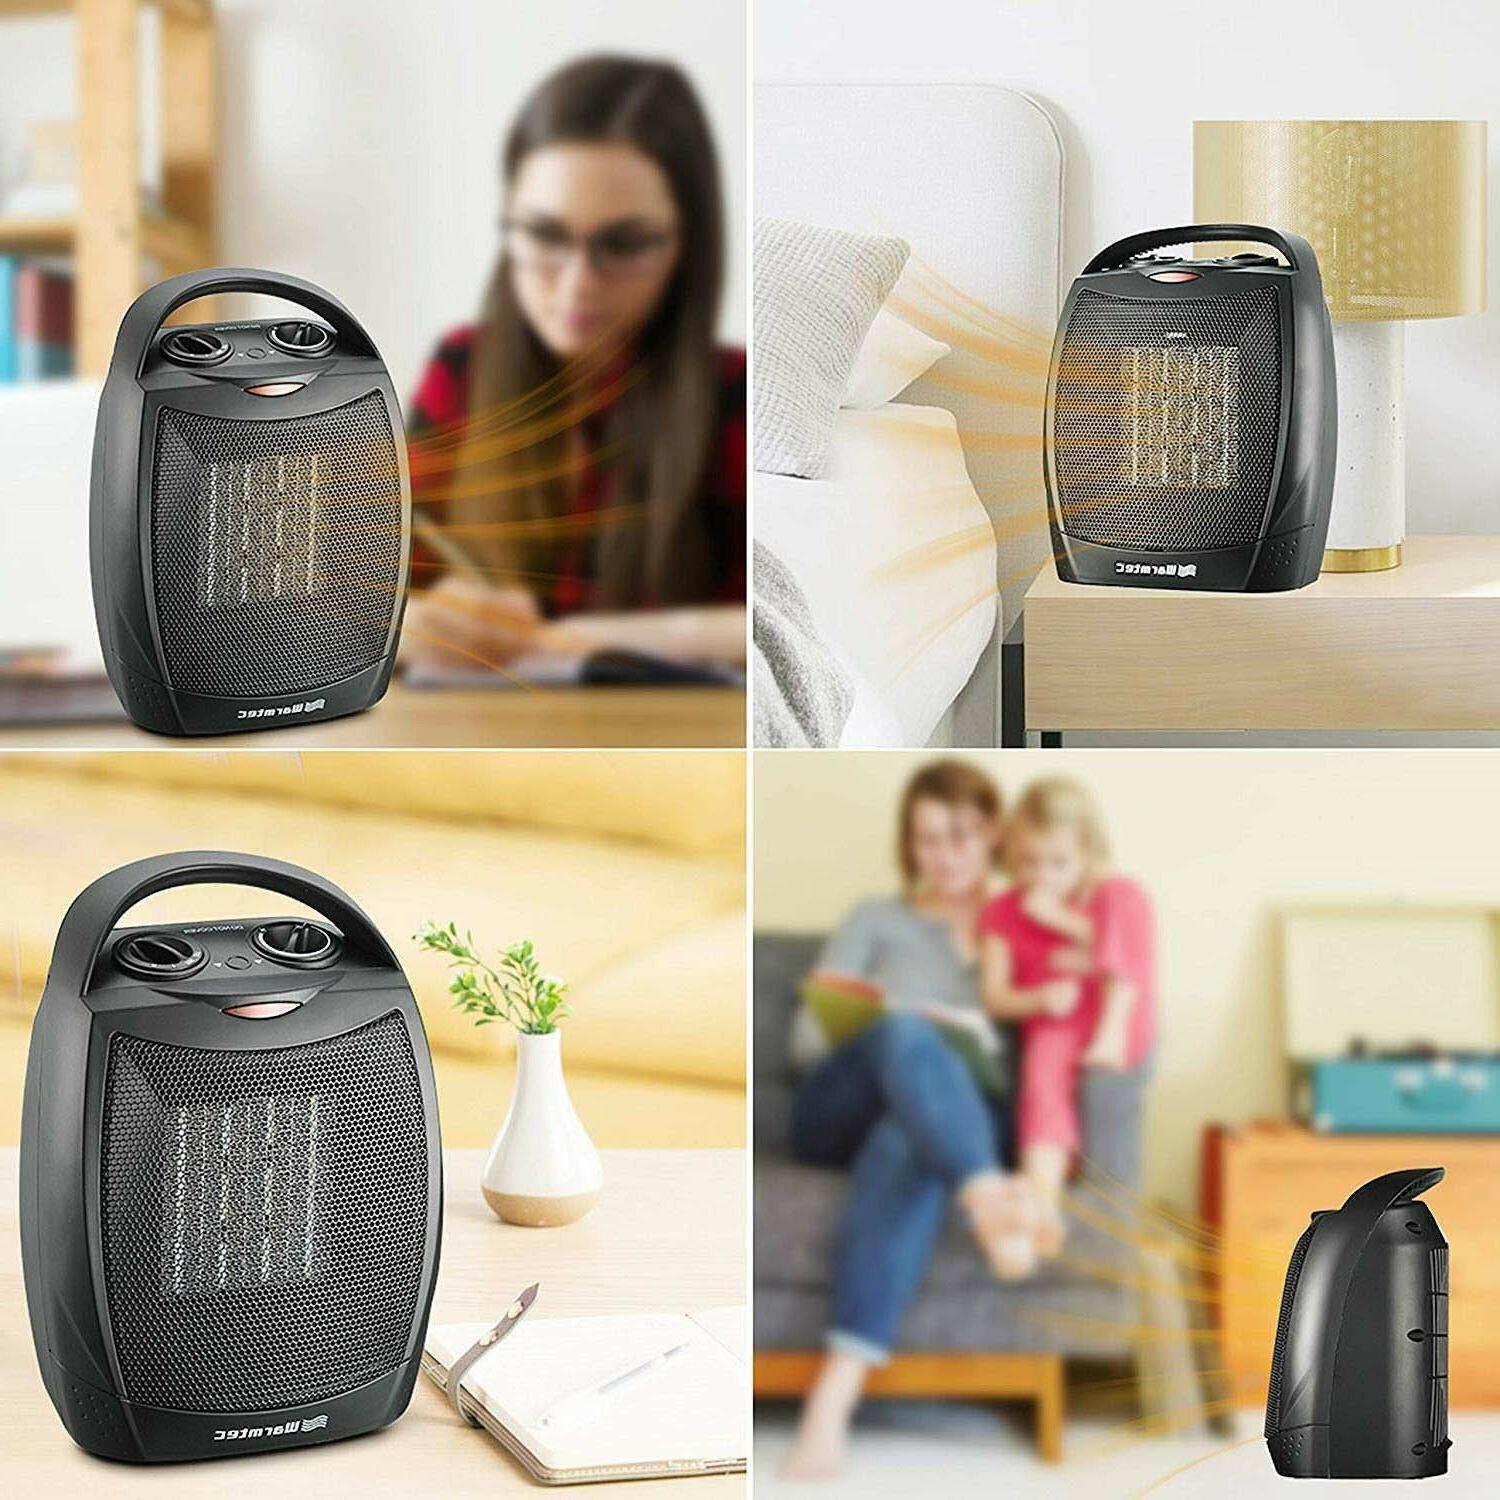 Portable Space Mini 1500W Thermostat with